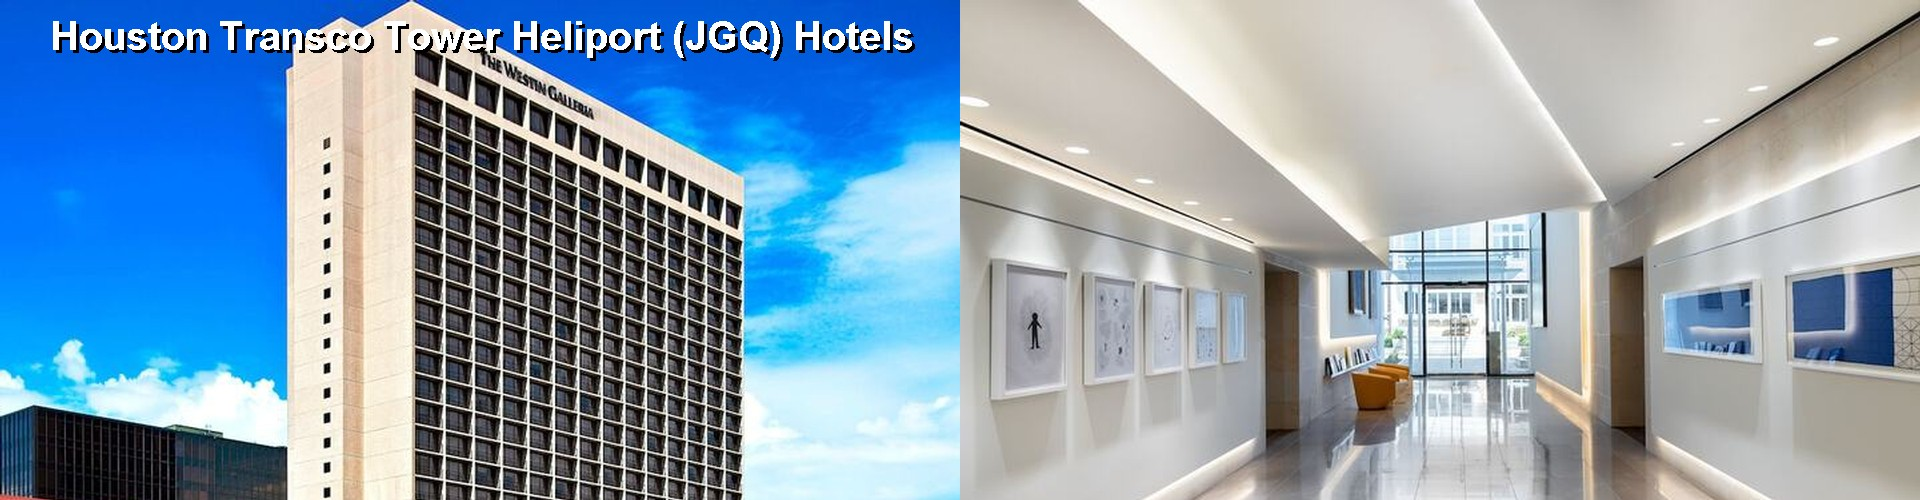 5 Best Hotels near Houston Transco Tower Heliport (JGQ)